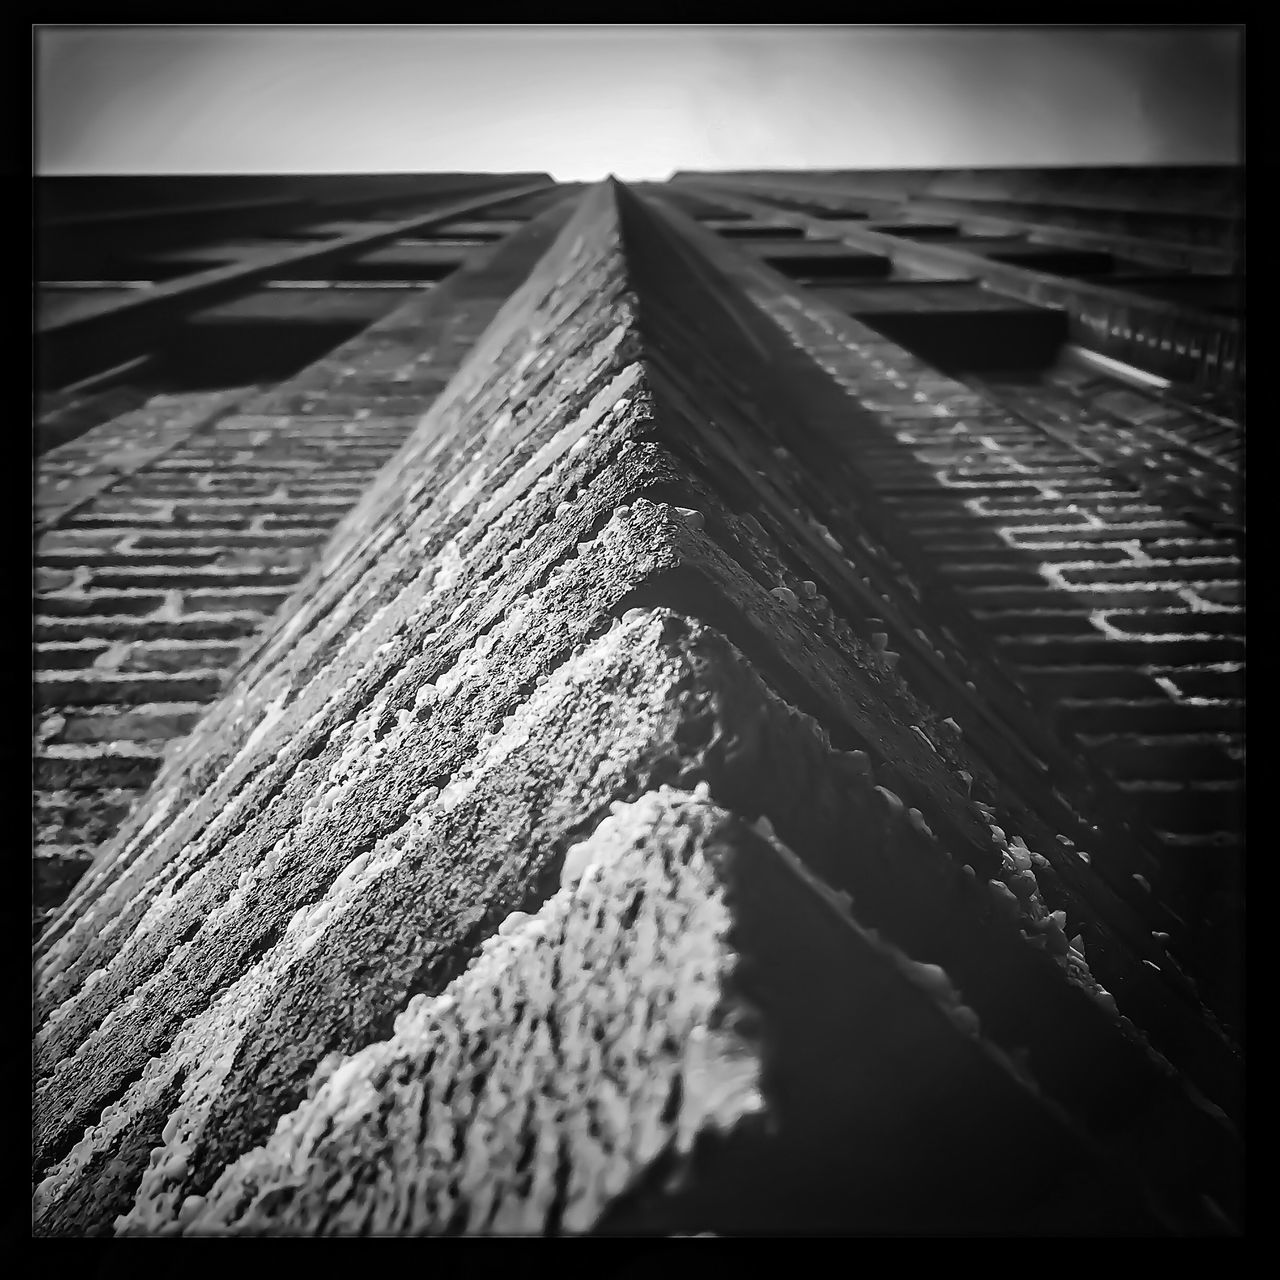 no people, built structure, day, close-up, outdoors, textured, architecture, sky